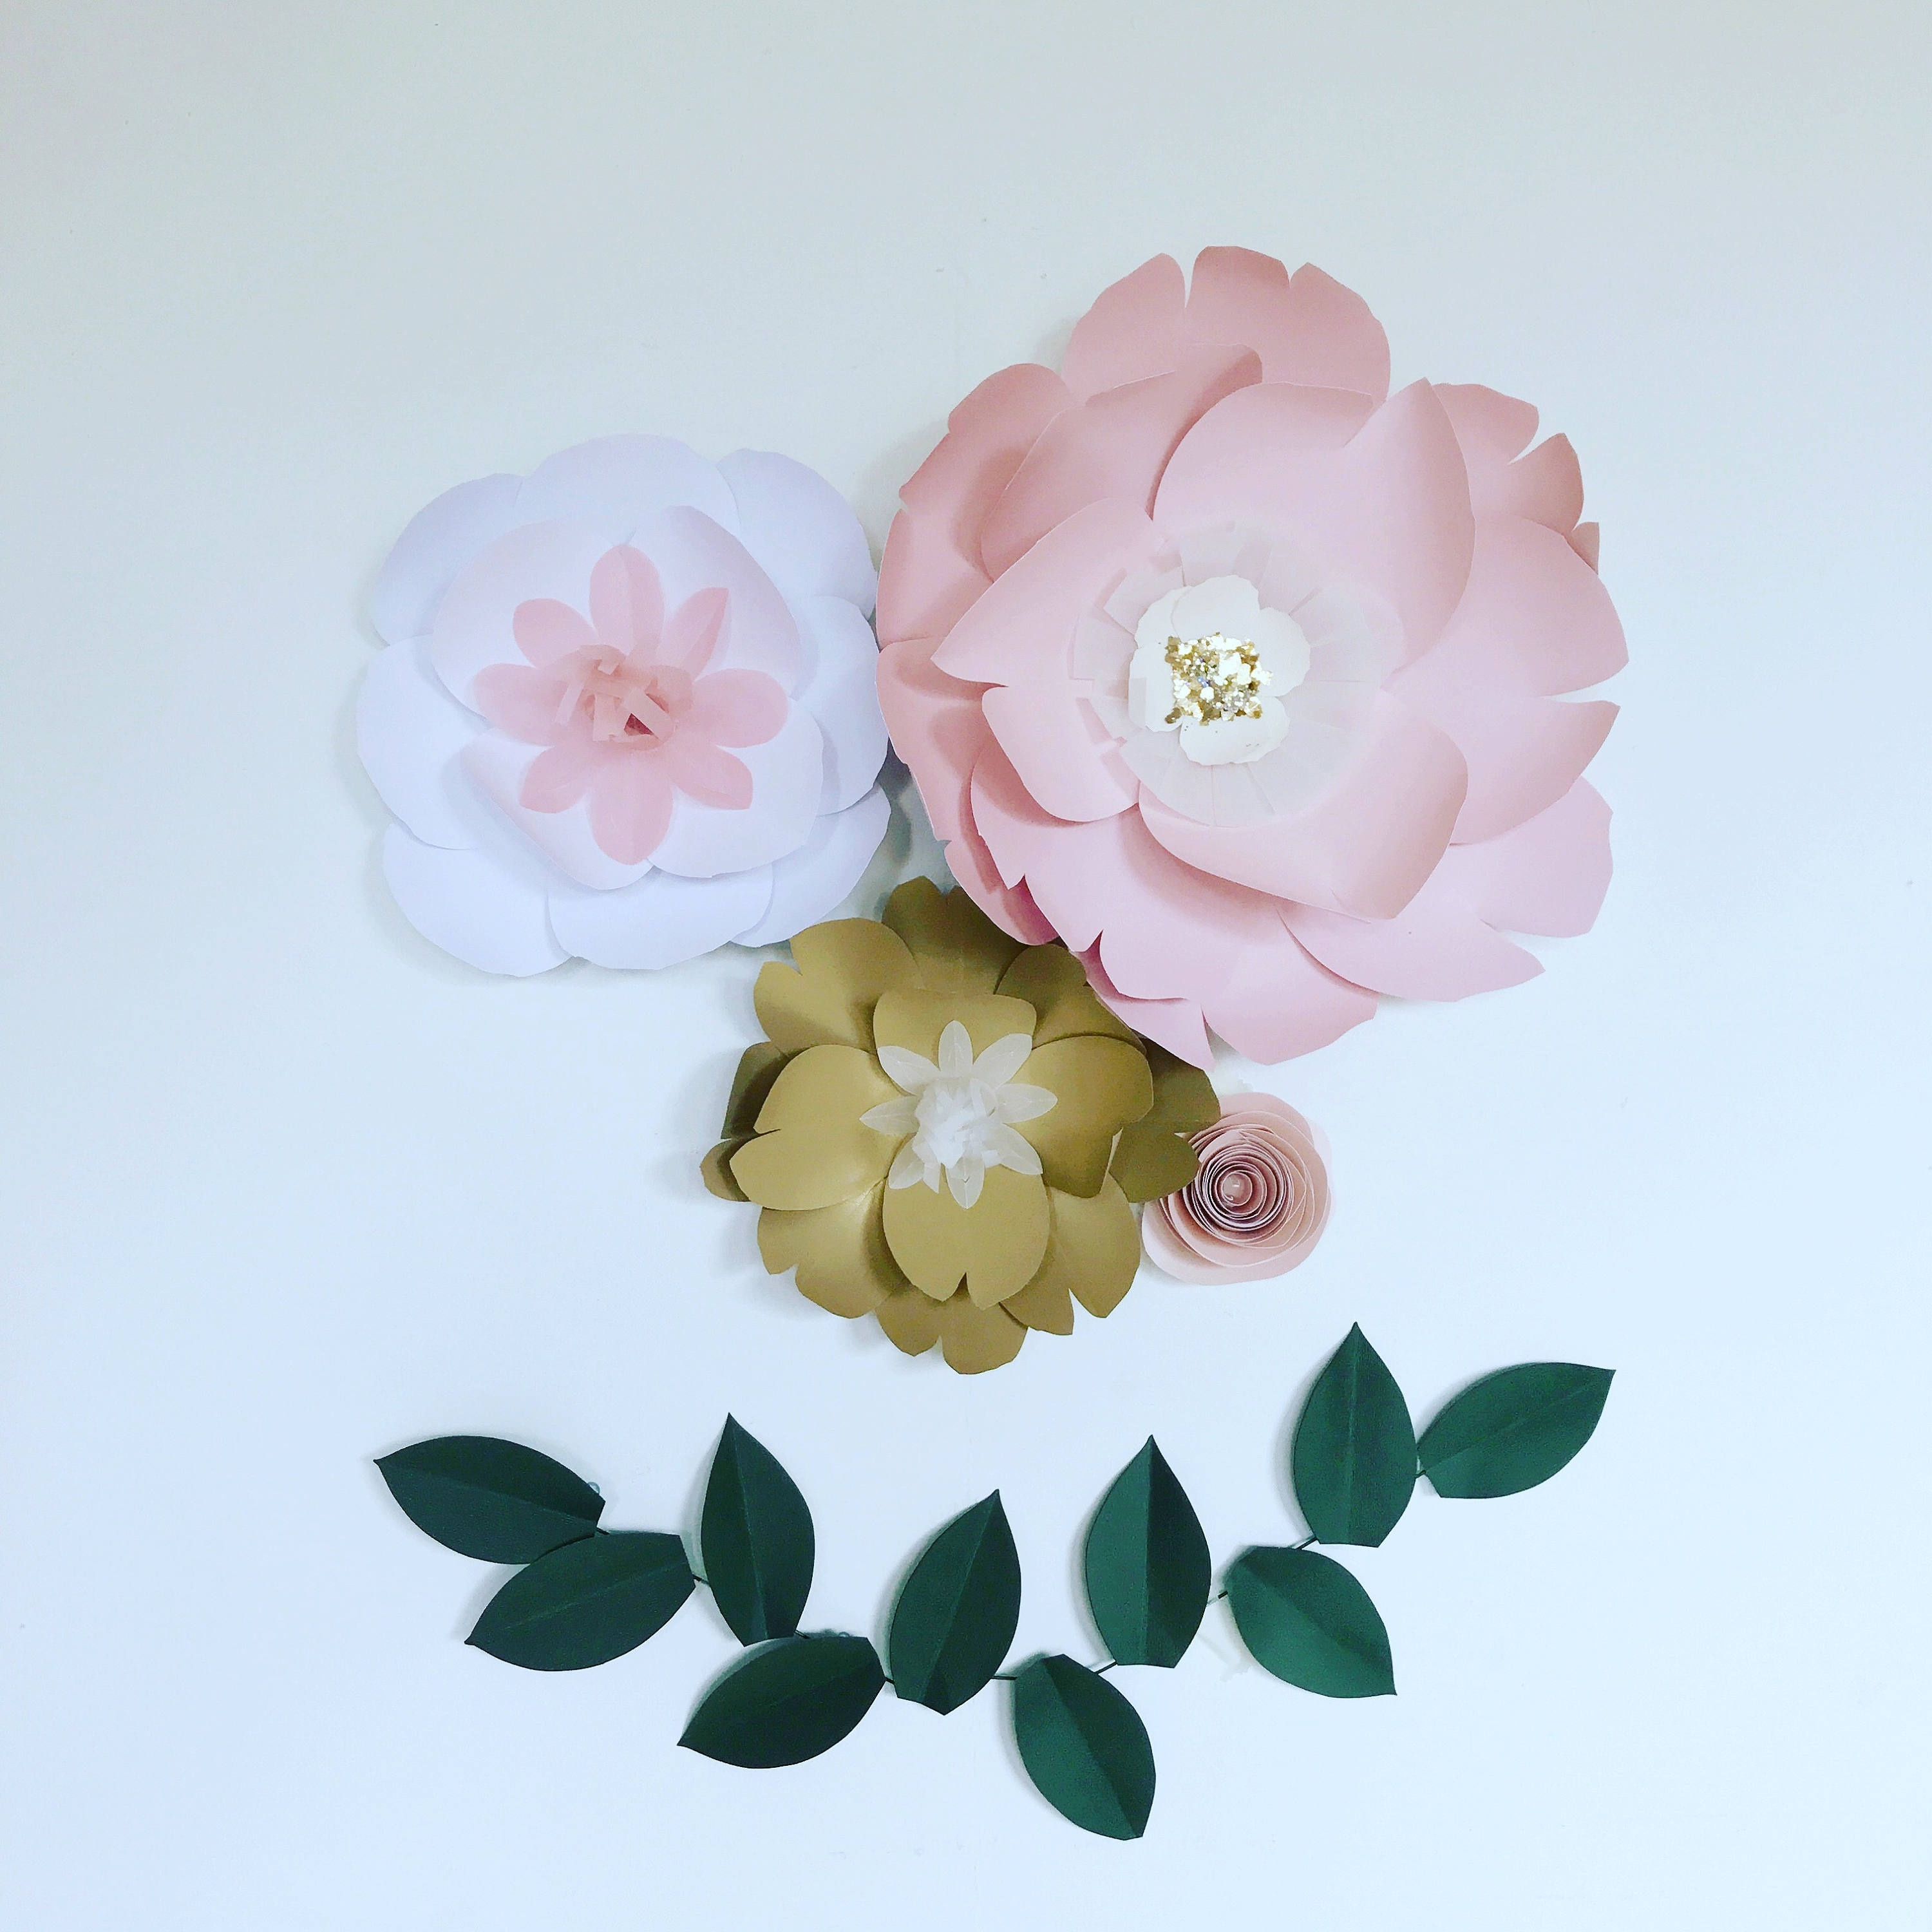 Floral Wall Art Within 2018 Large Paper Flowers Wall Decor, Floral Wall Art, Giant Pink / Gold (View 15 of 15)